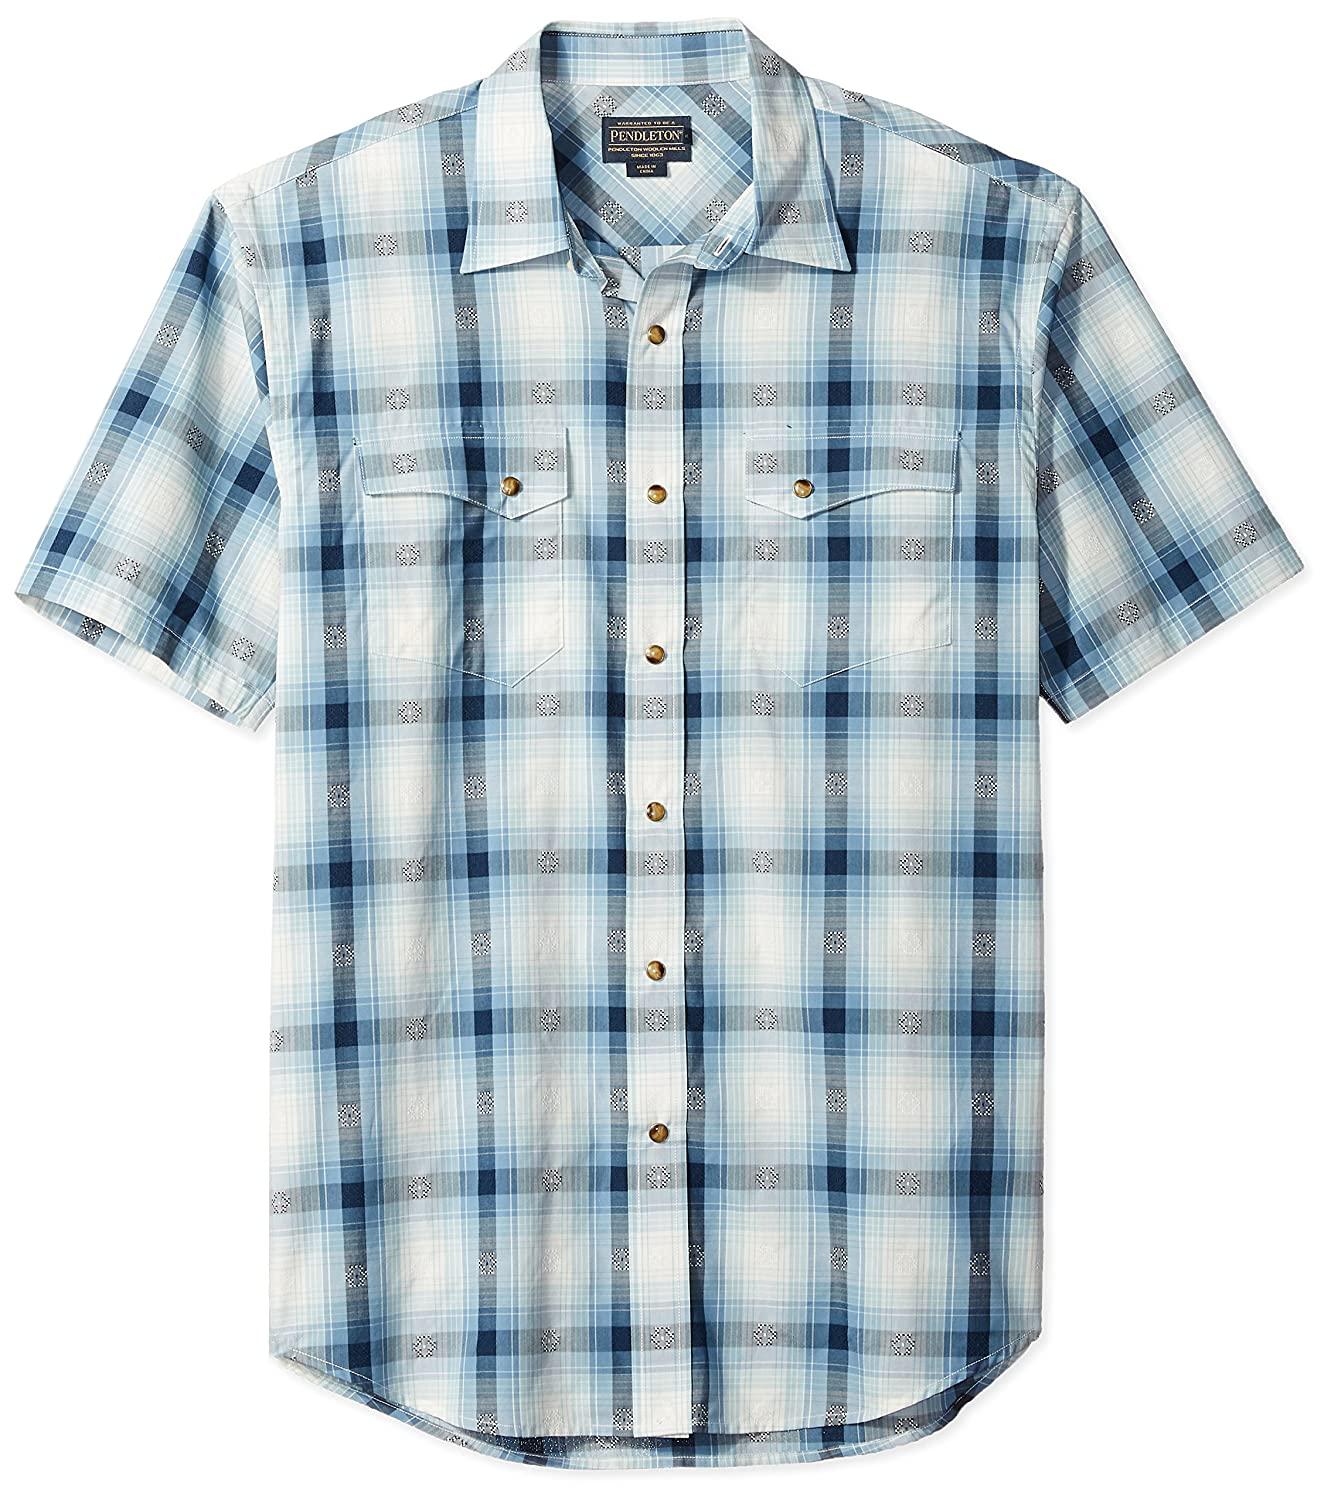 b91be040f3 Short sleeve woven snap down shirt with western styling and a new diamond  plaid. Snap front closure. Bias cut front and back yokes, pockets and  pocket flaps